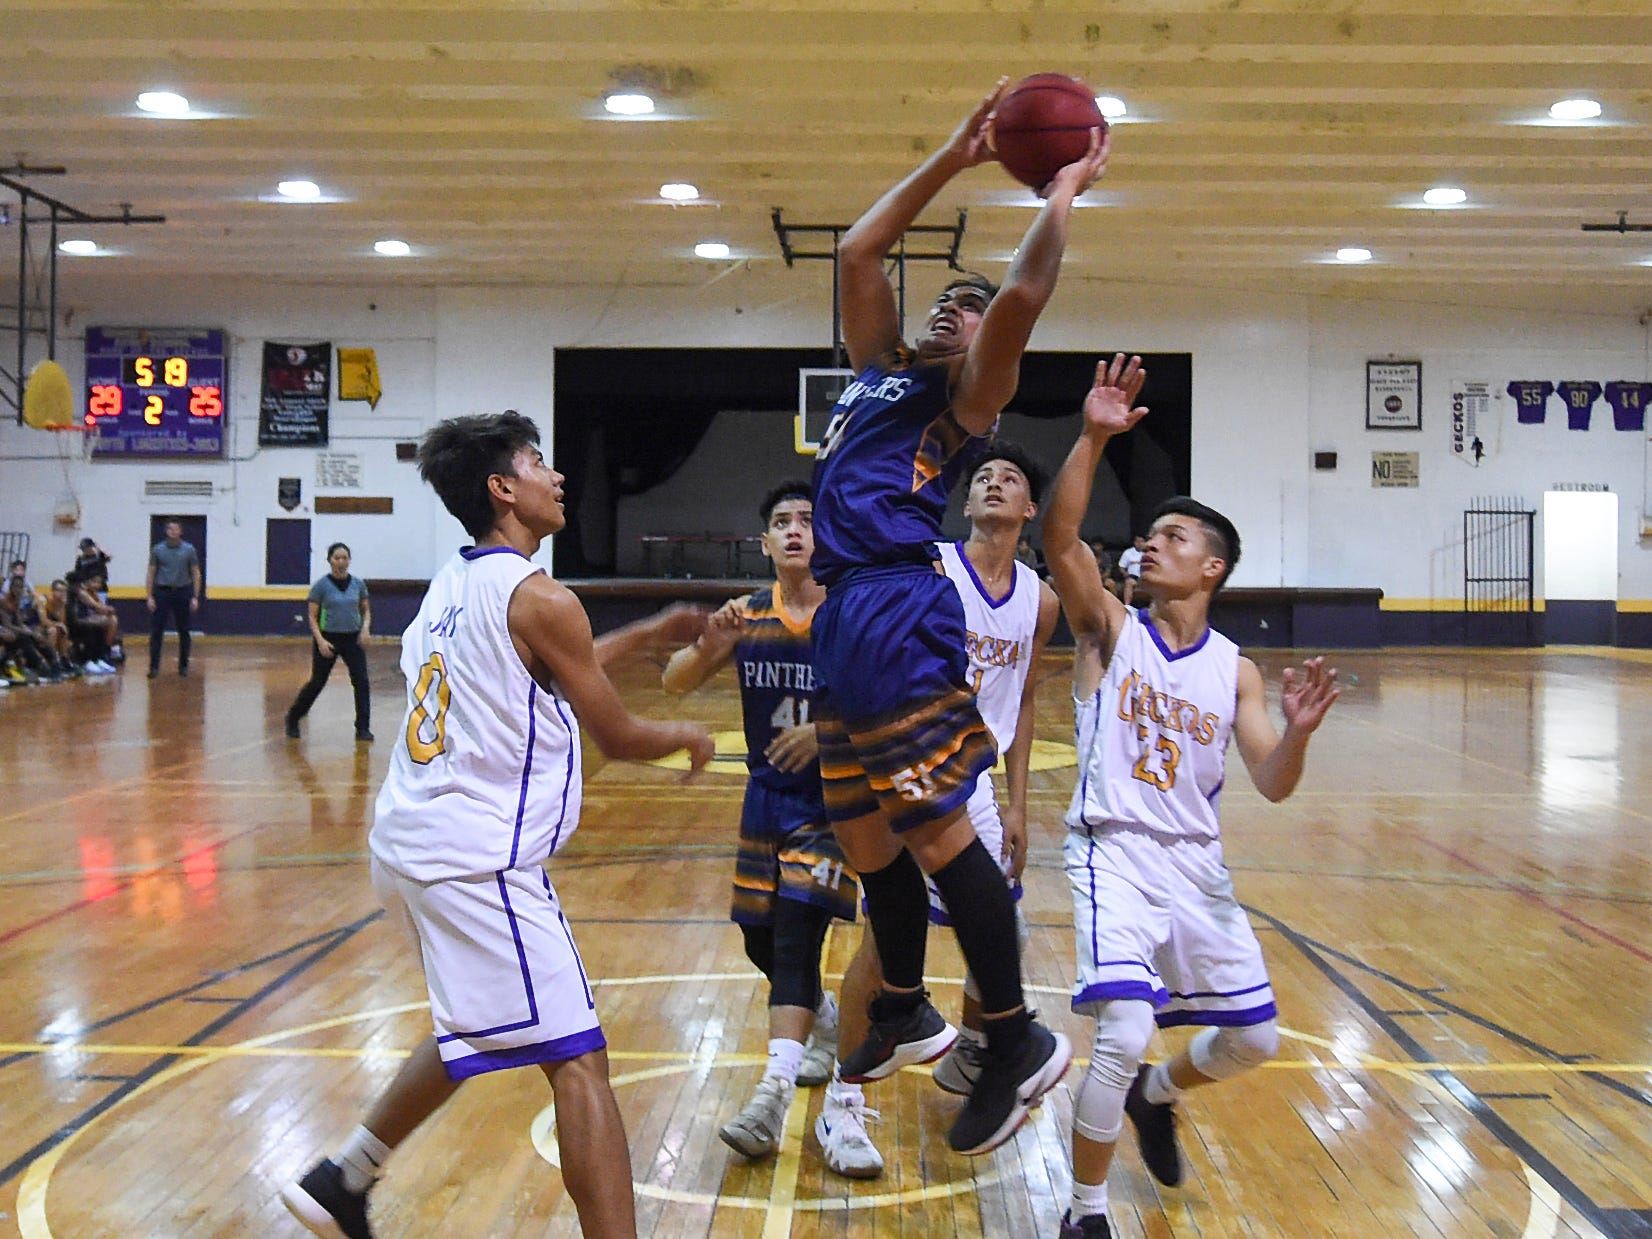 Guam High Panther Dillian Dela Cruz (51) takes it strong to the rim against the George Washington Geckos during their Independent Interscholastic Athletic Association of Guam Boys' Basketball game at the GW High School gym on Feb. 2, 2019.